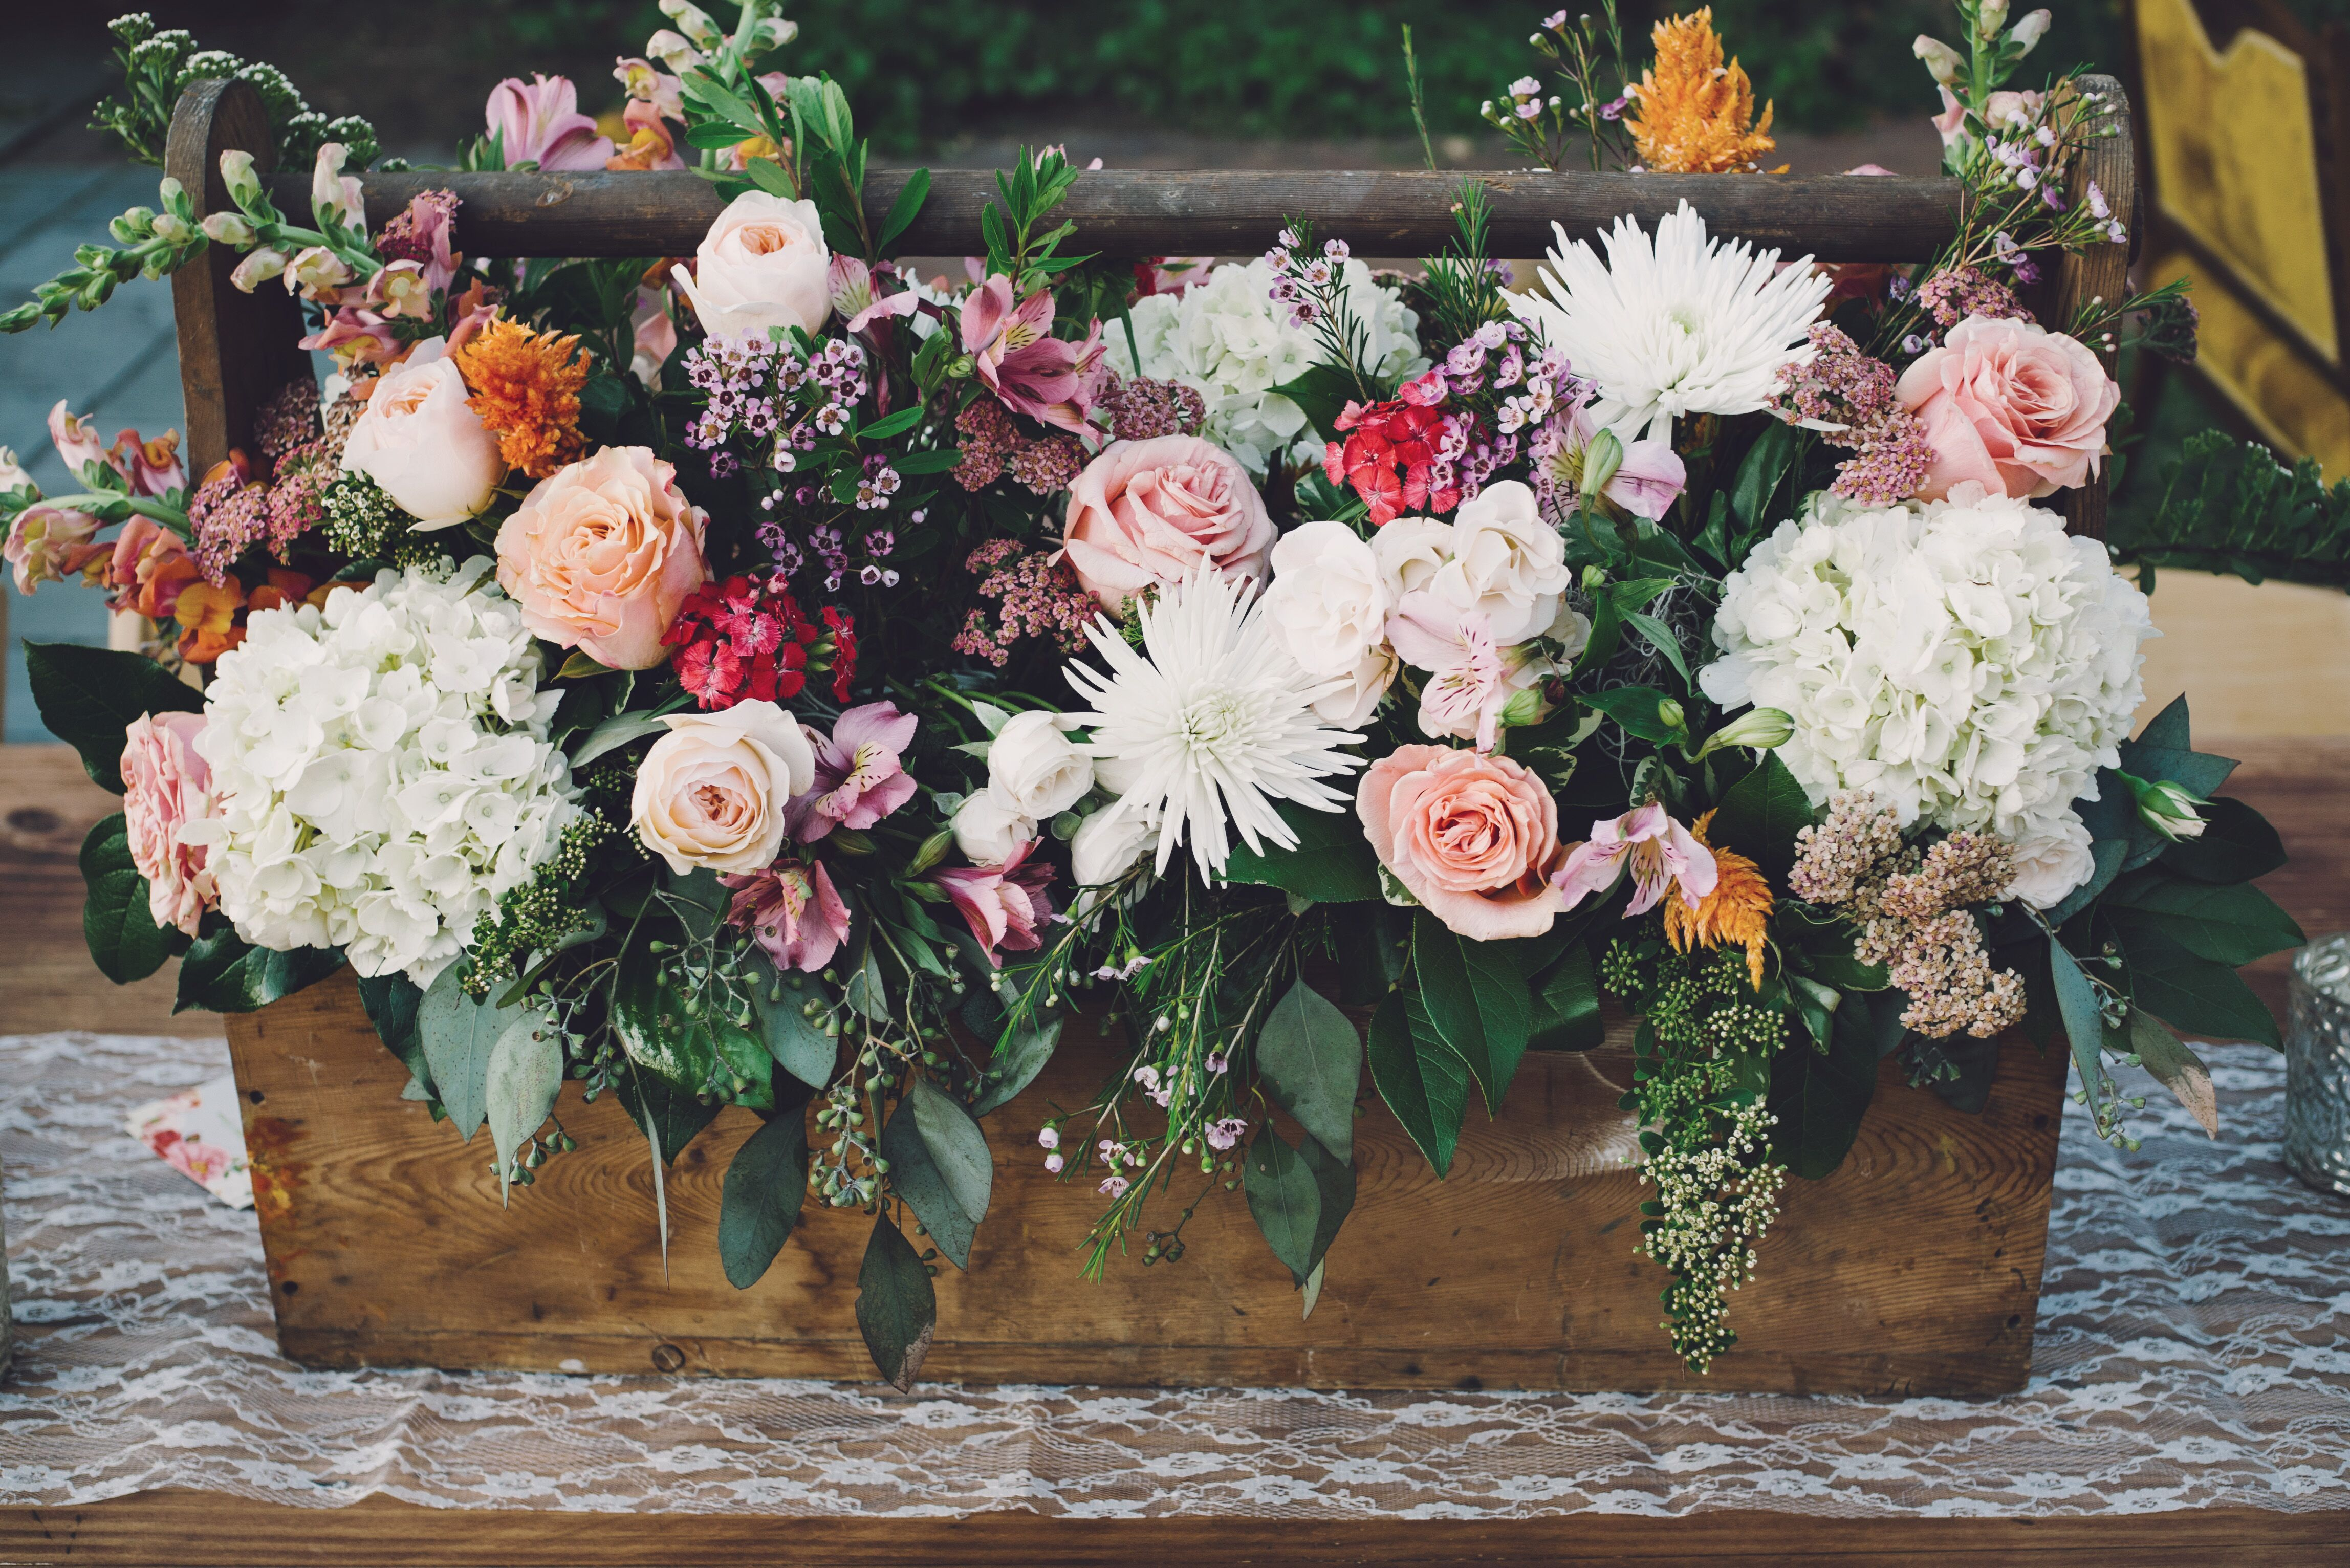 Wood Box Flower Arrangement With Peonies And Chryanthemums